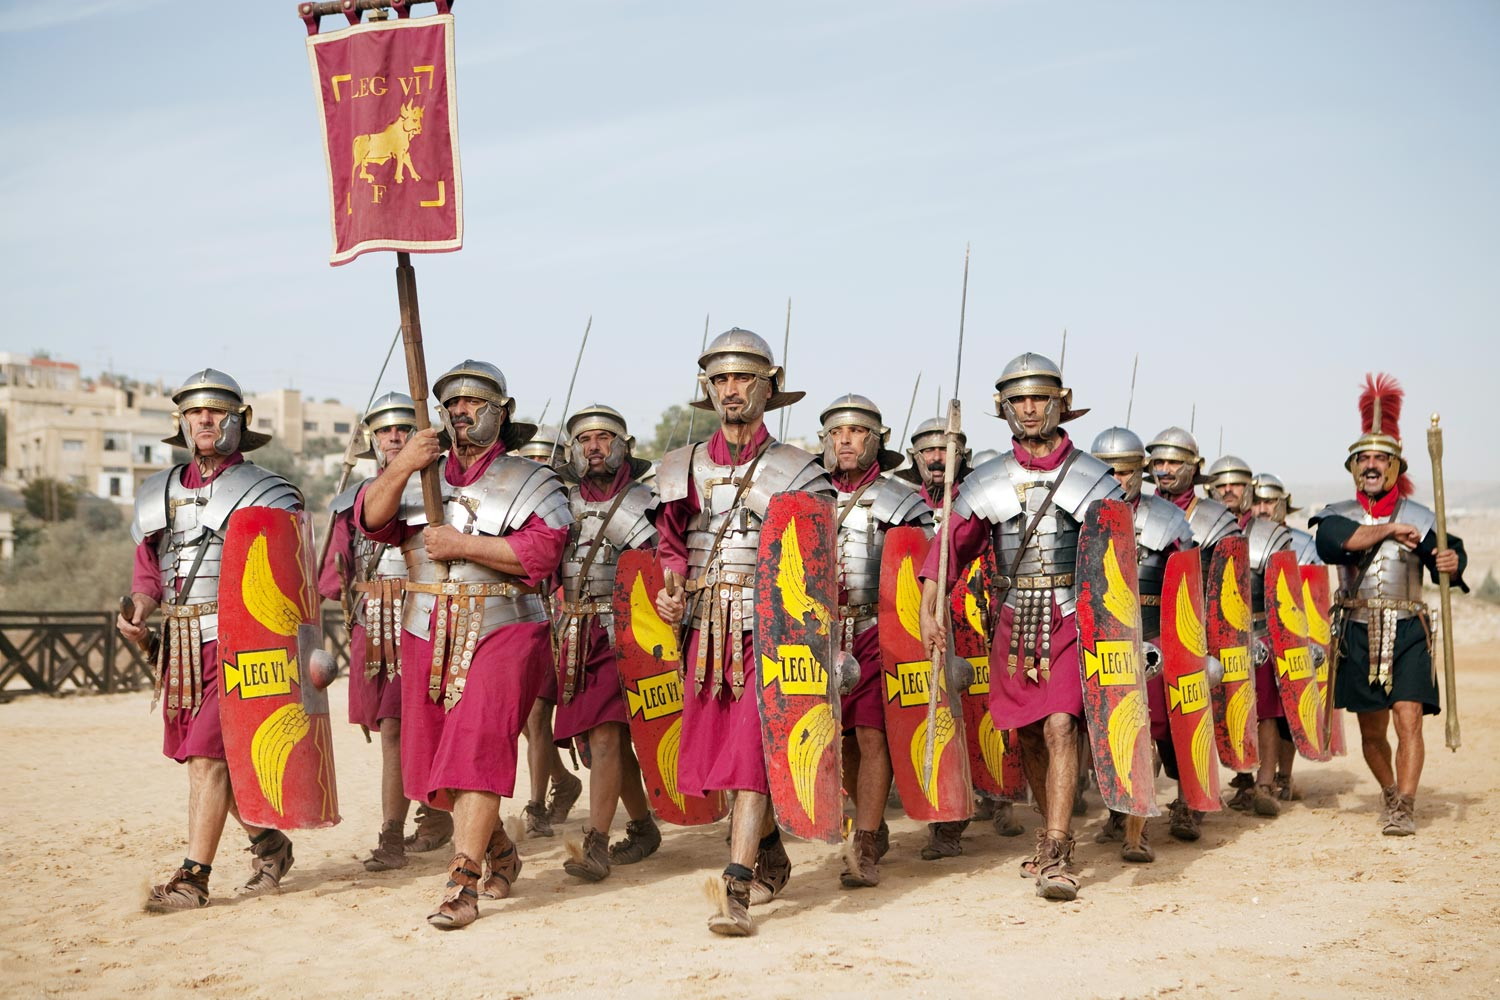 Fig 2. Coherent Roman legionaries marching towards the Belgians. Photo: iStock.com/1001nights